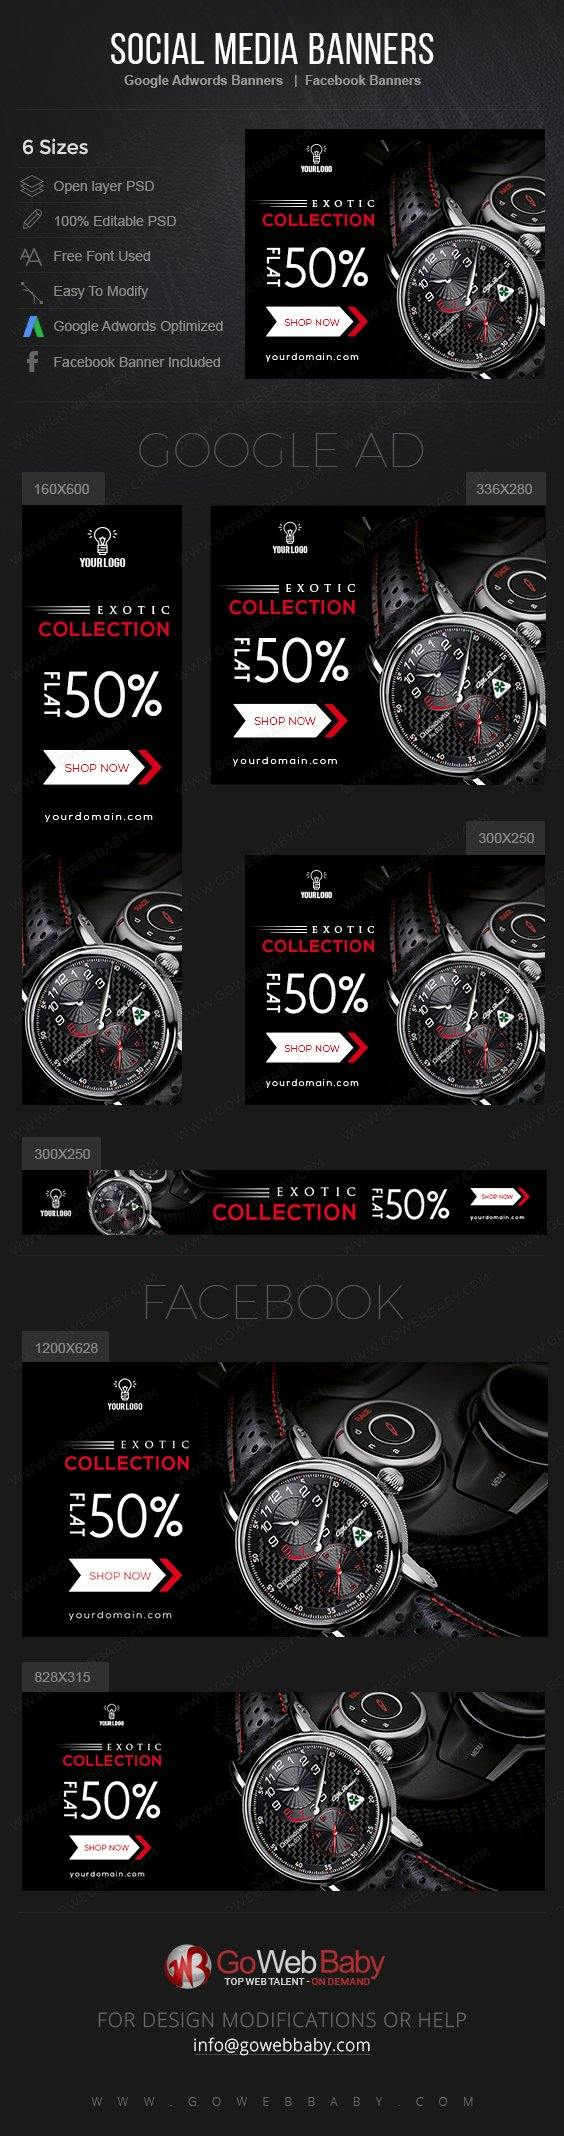 Google Adwords Display Banner With Facebook Banners - Exotic Watches For Men - GoWebBaby.Com